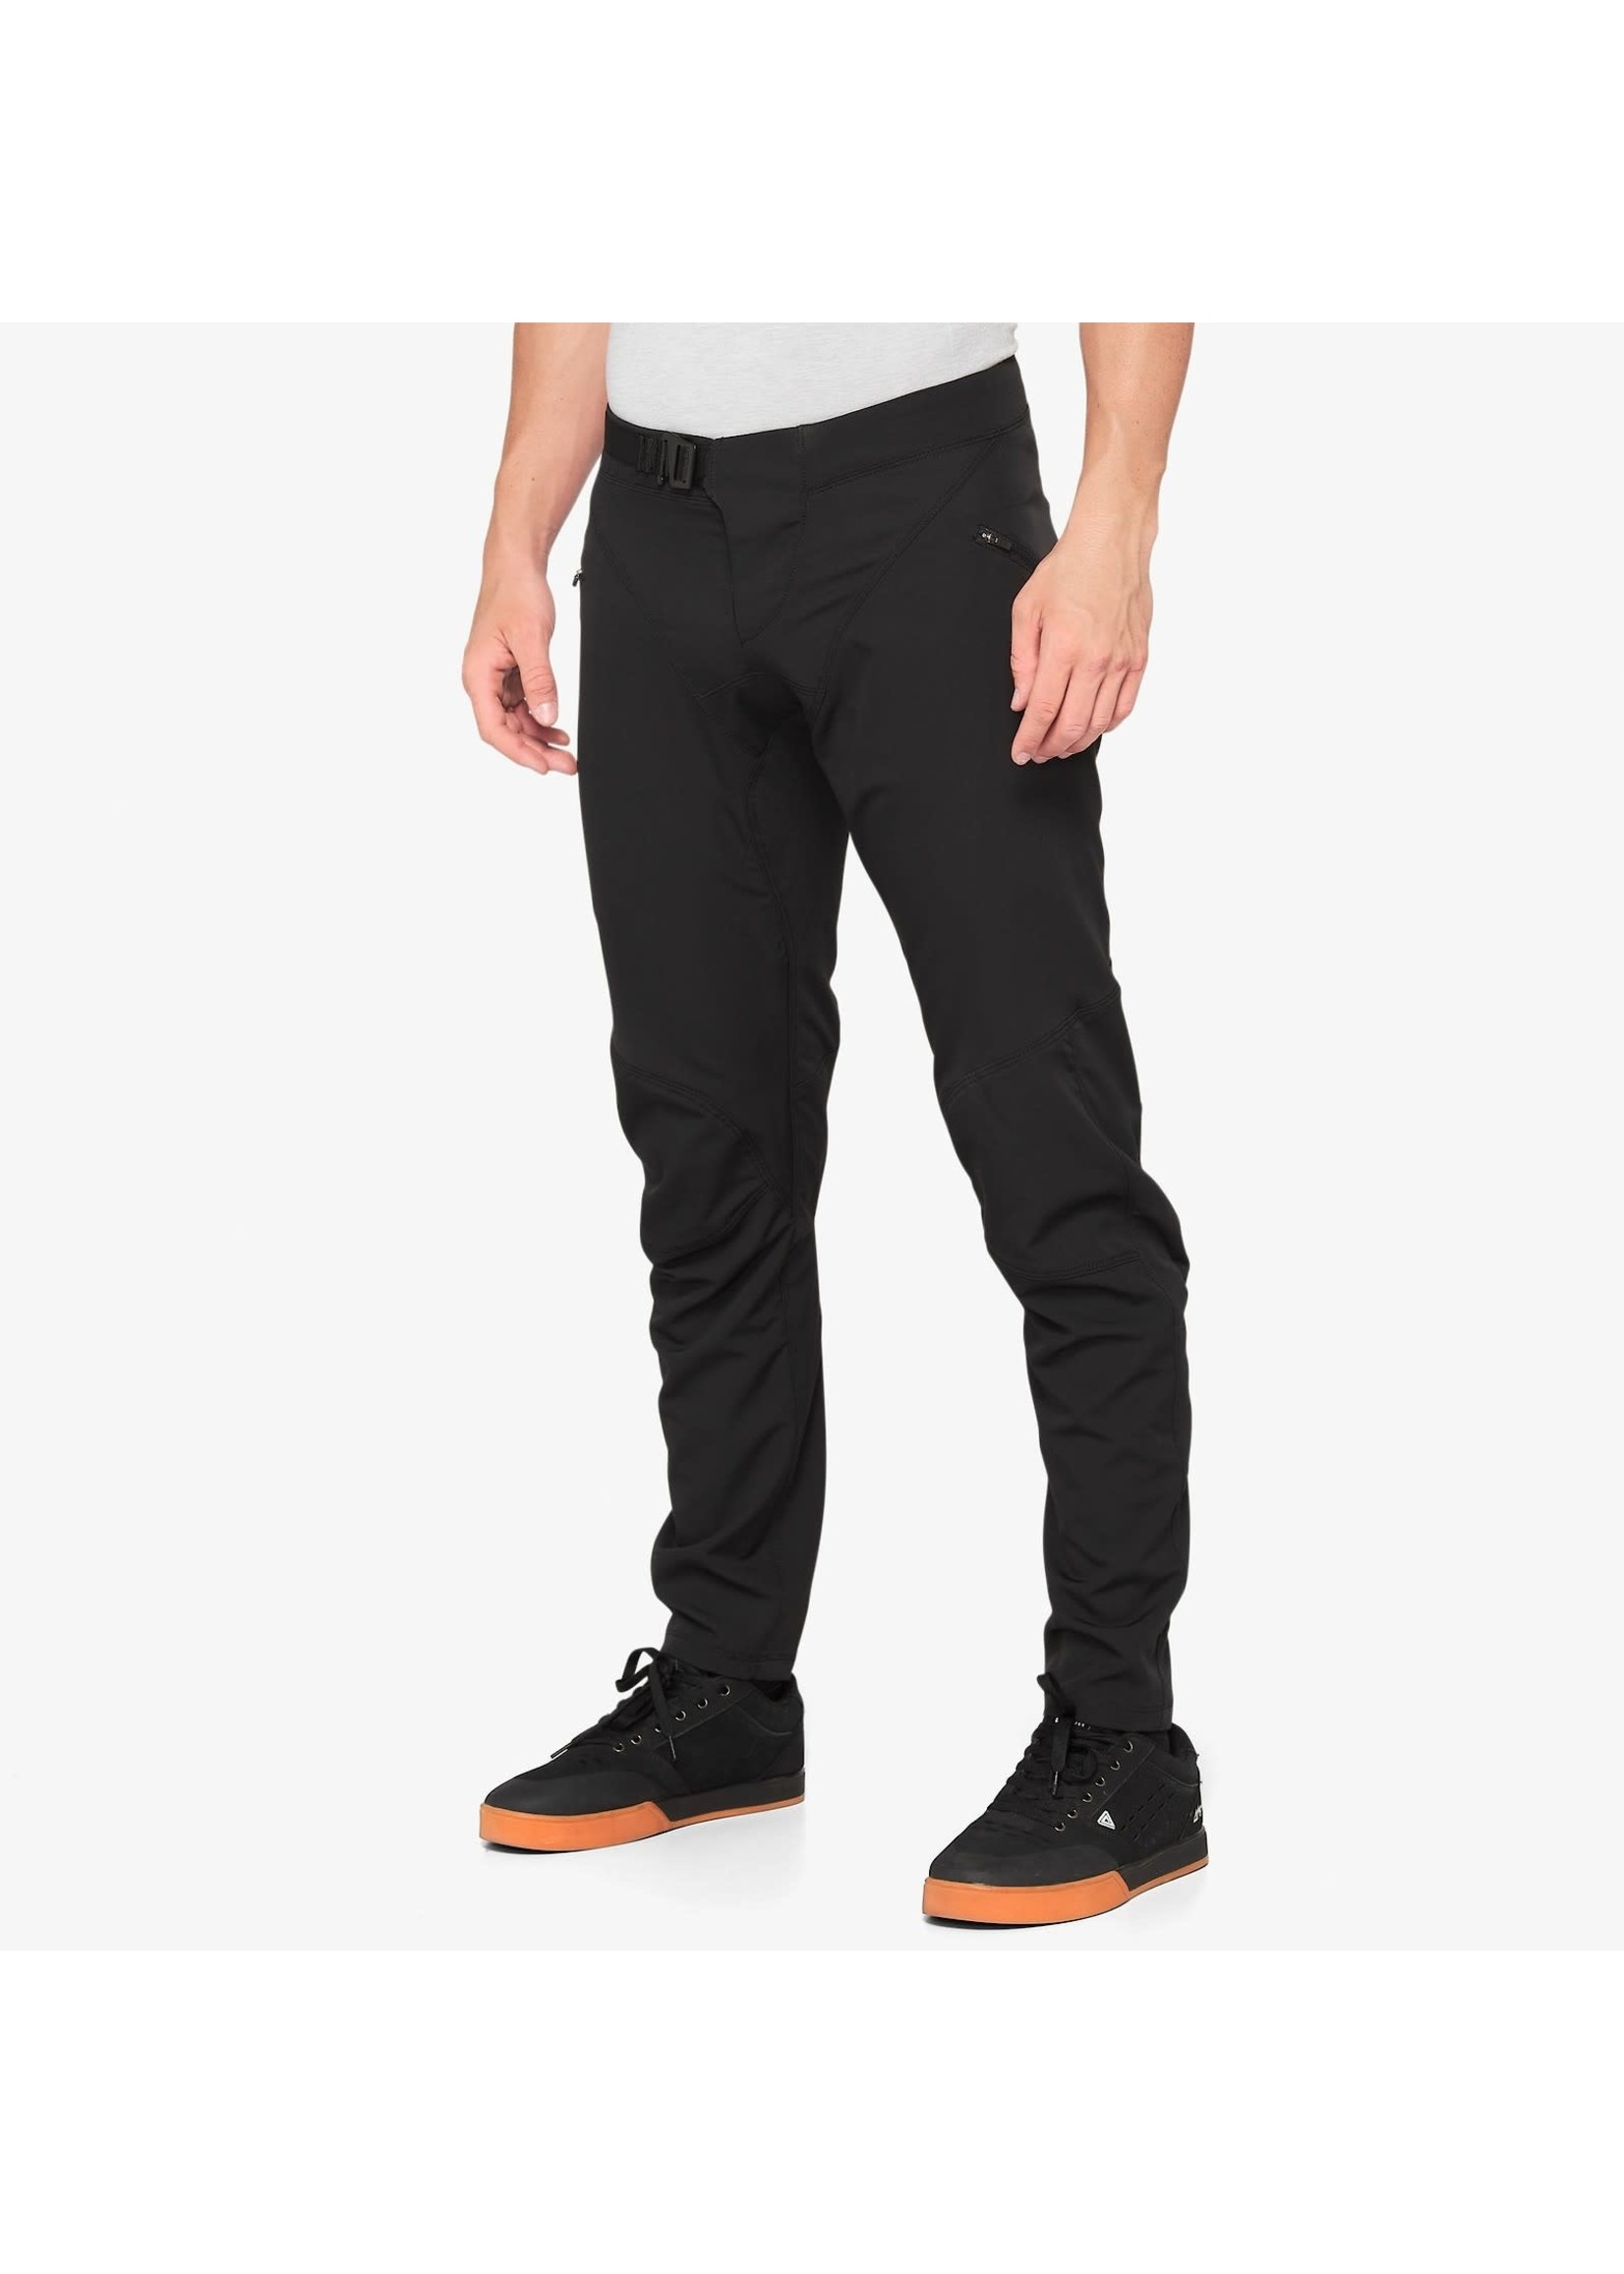 100 Percent 100% Airmatic All Mountain Pants